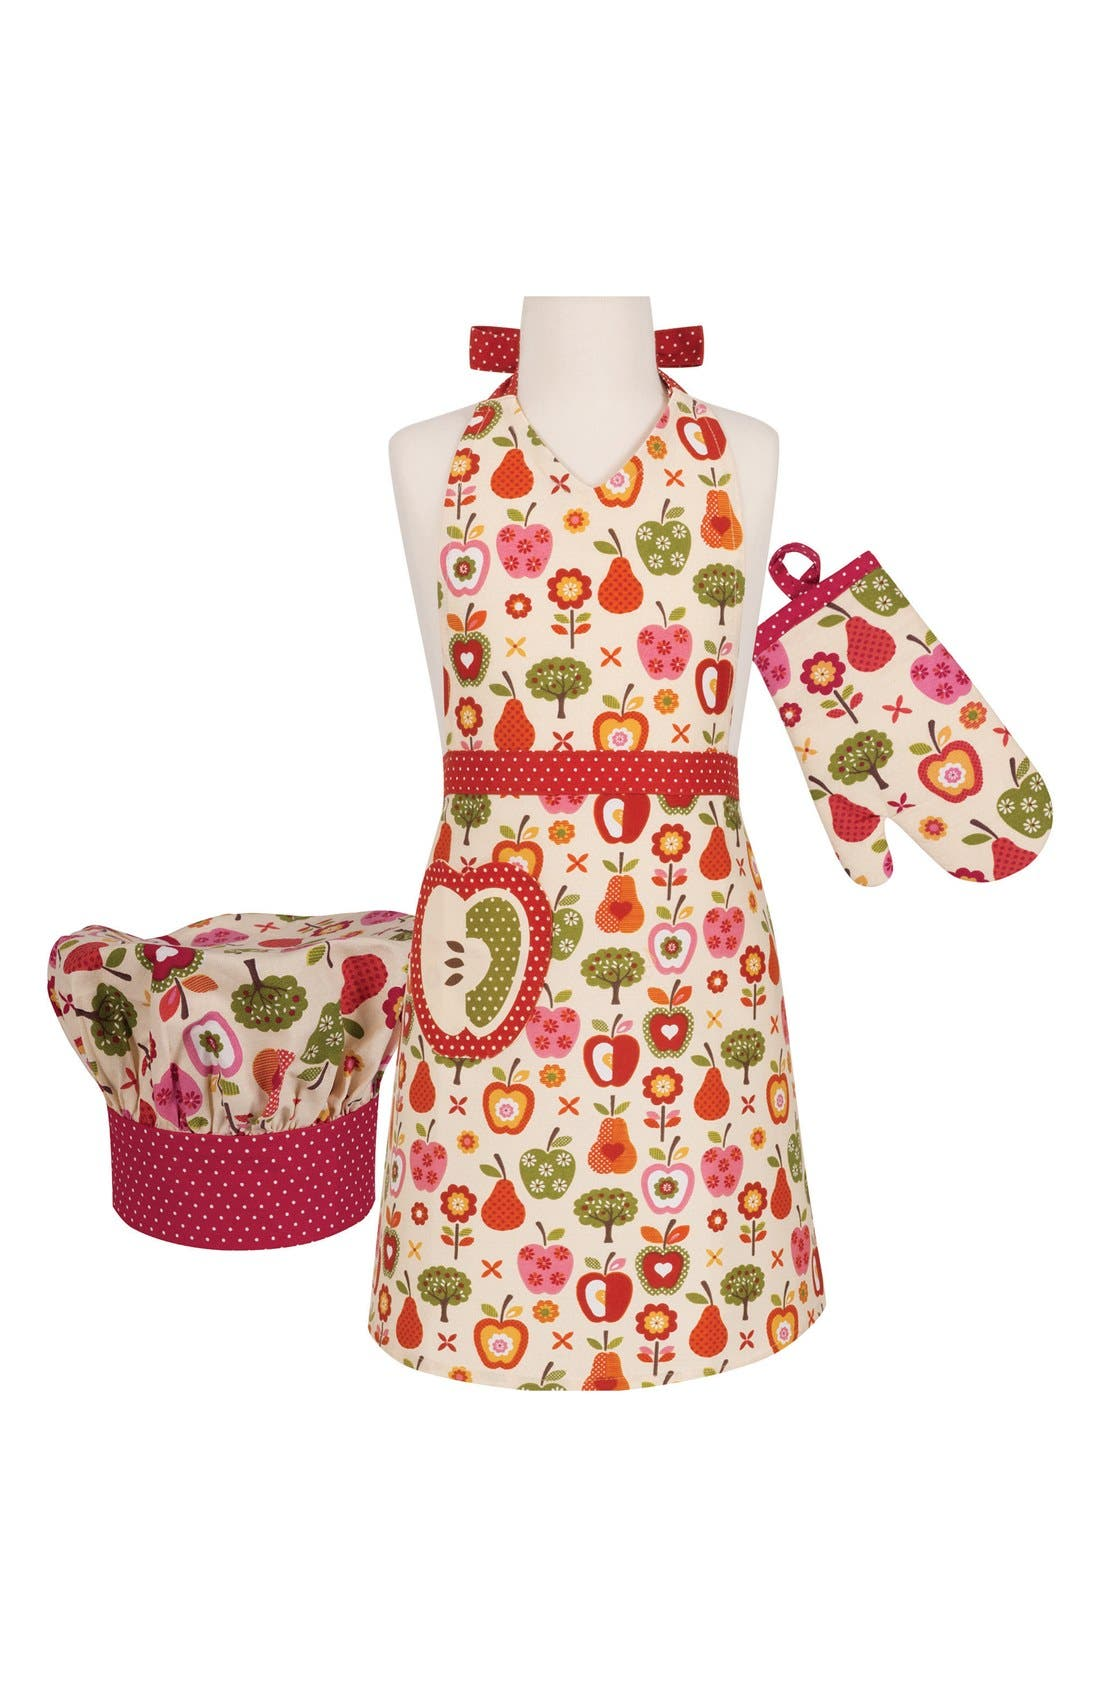 Handstand Kitchen Apple a Day Apron, Chef's Hat & Oven Mitt Set